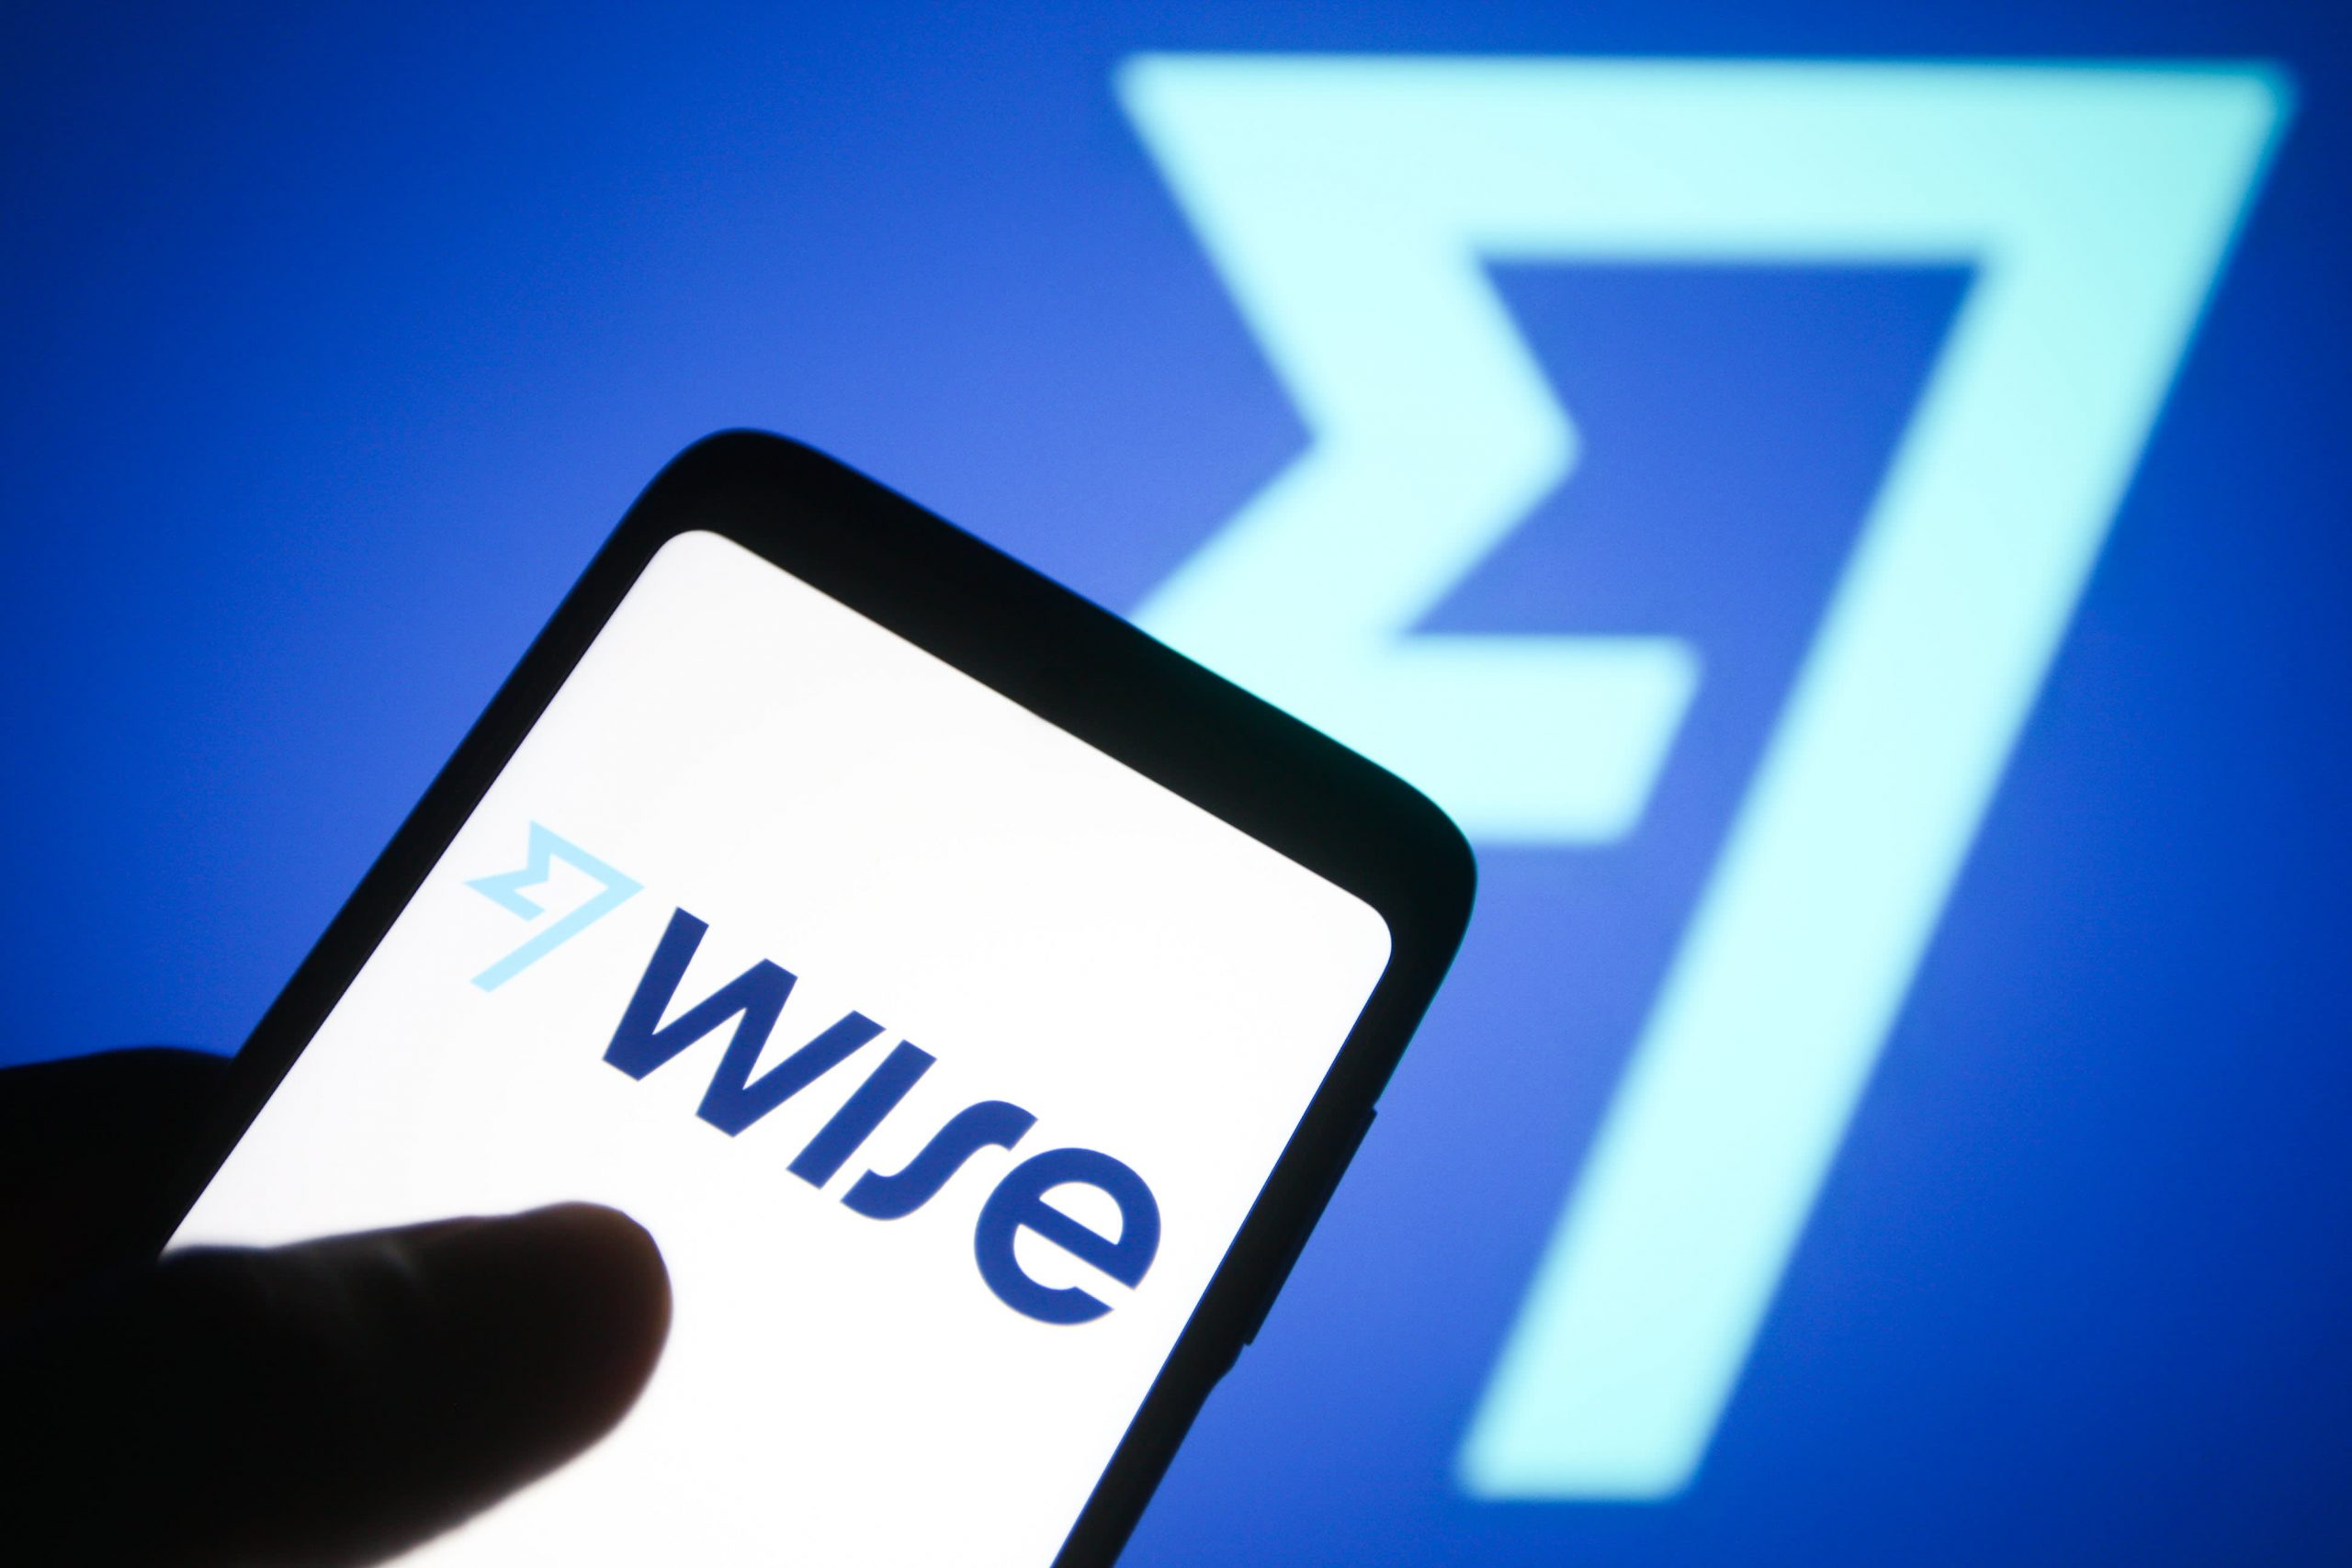 Wise launches investing feature